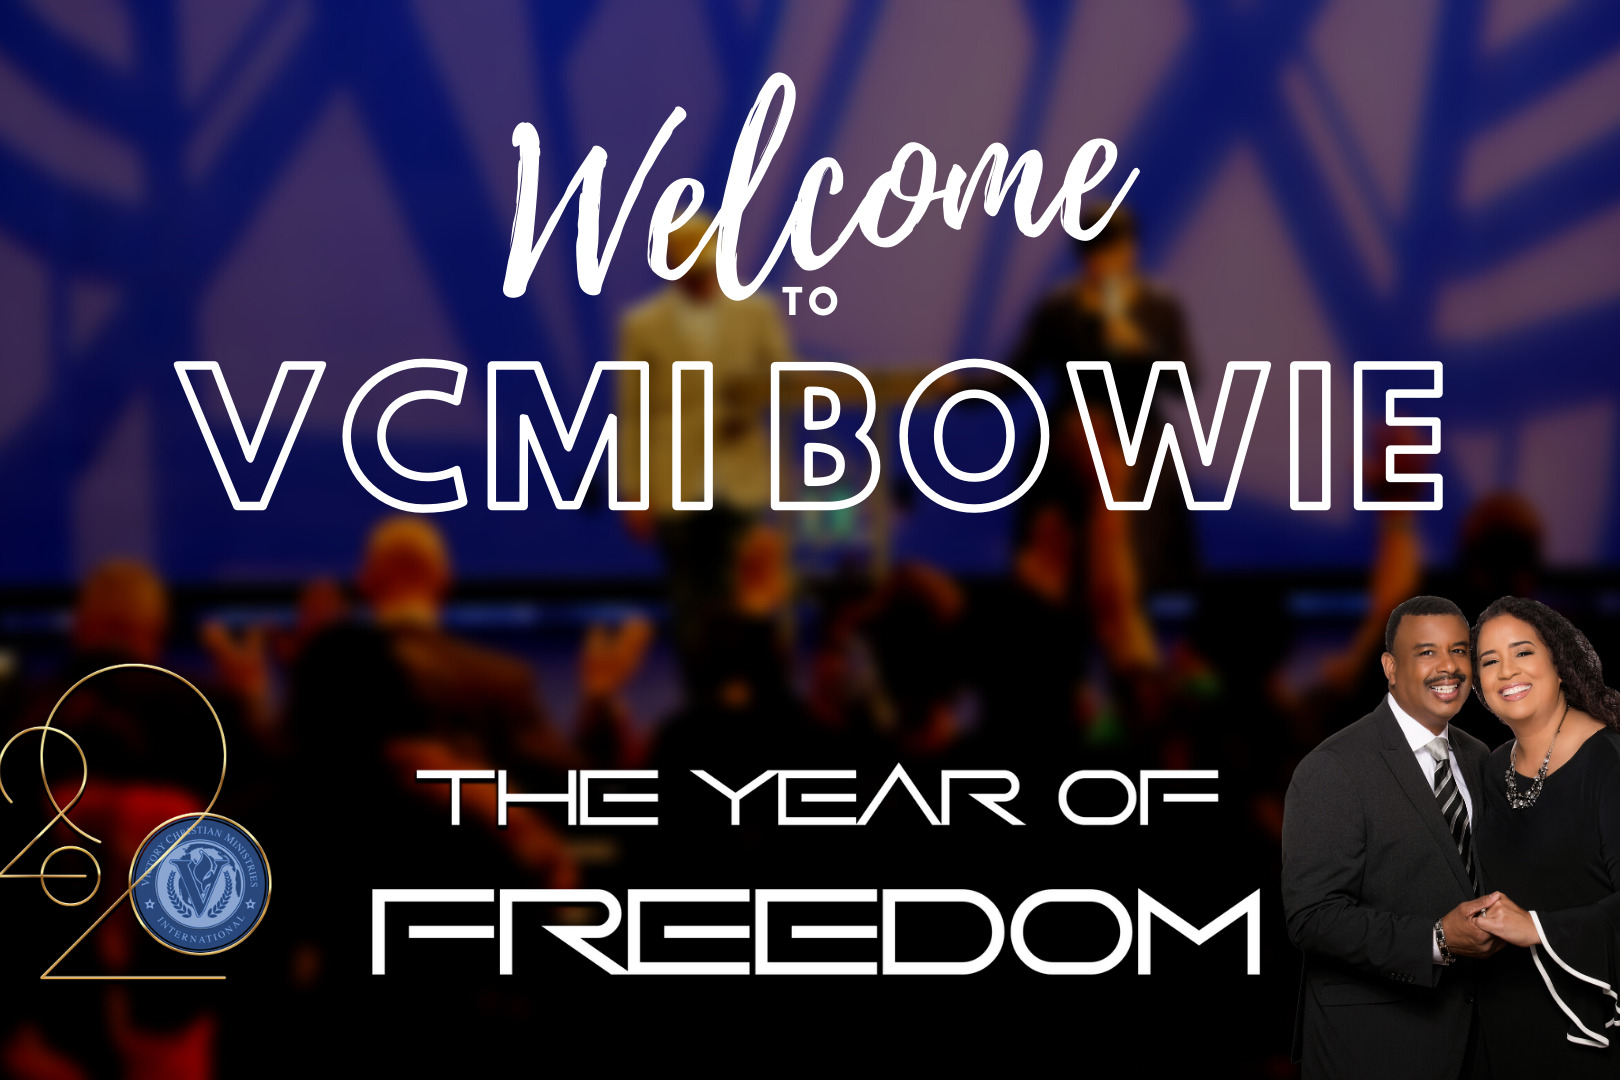 VCMI-Bowie The Year of Freedom